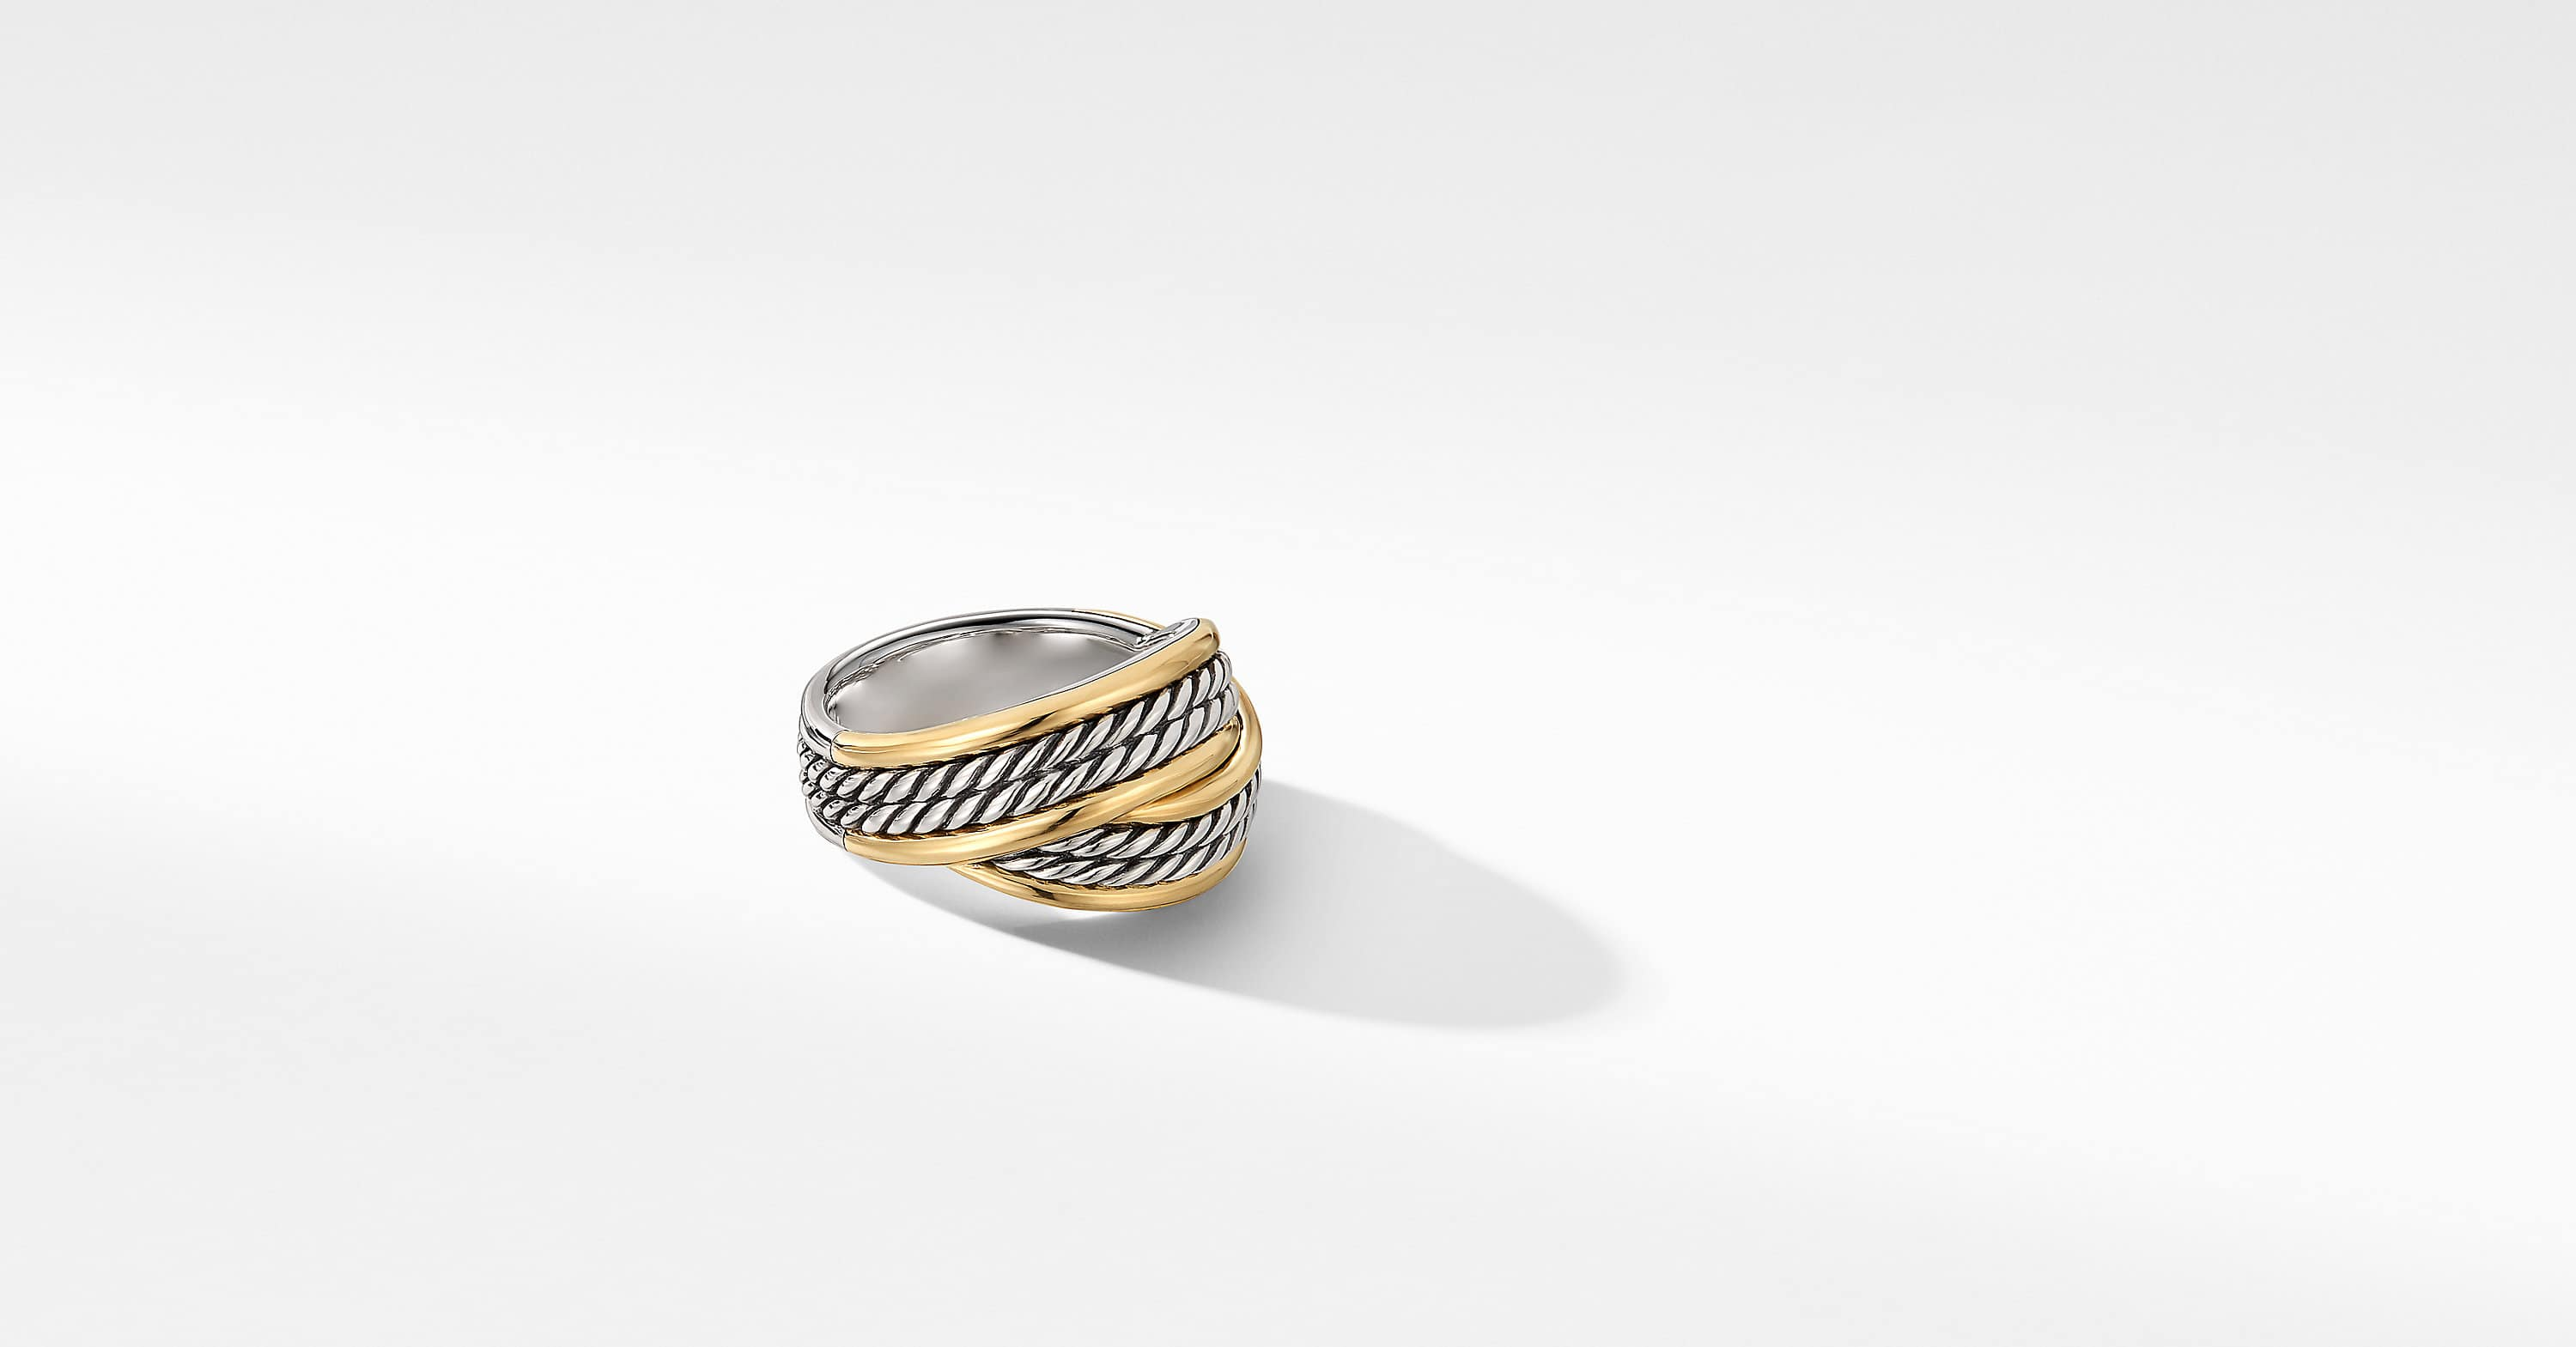 DY Origami Ring with 18K Yellow Gold, 13mm